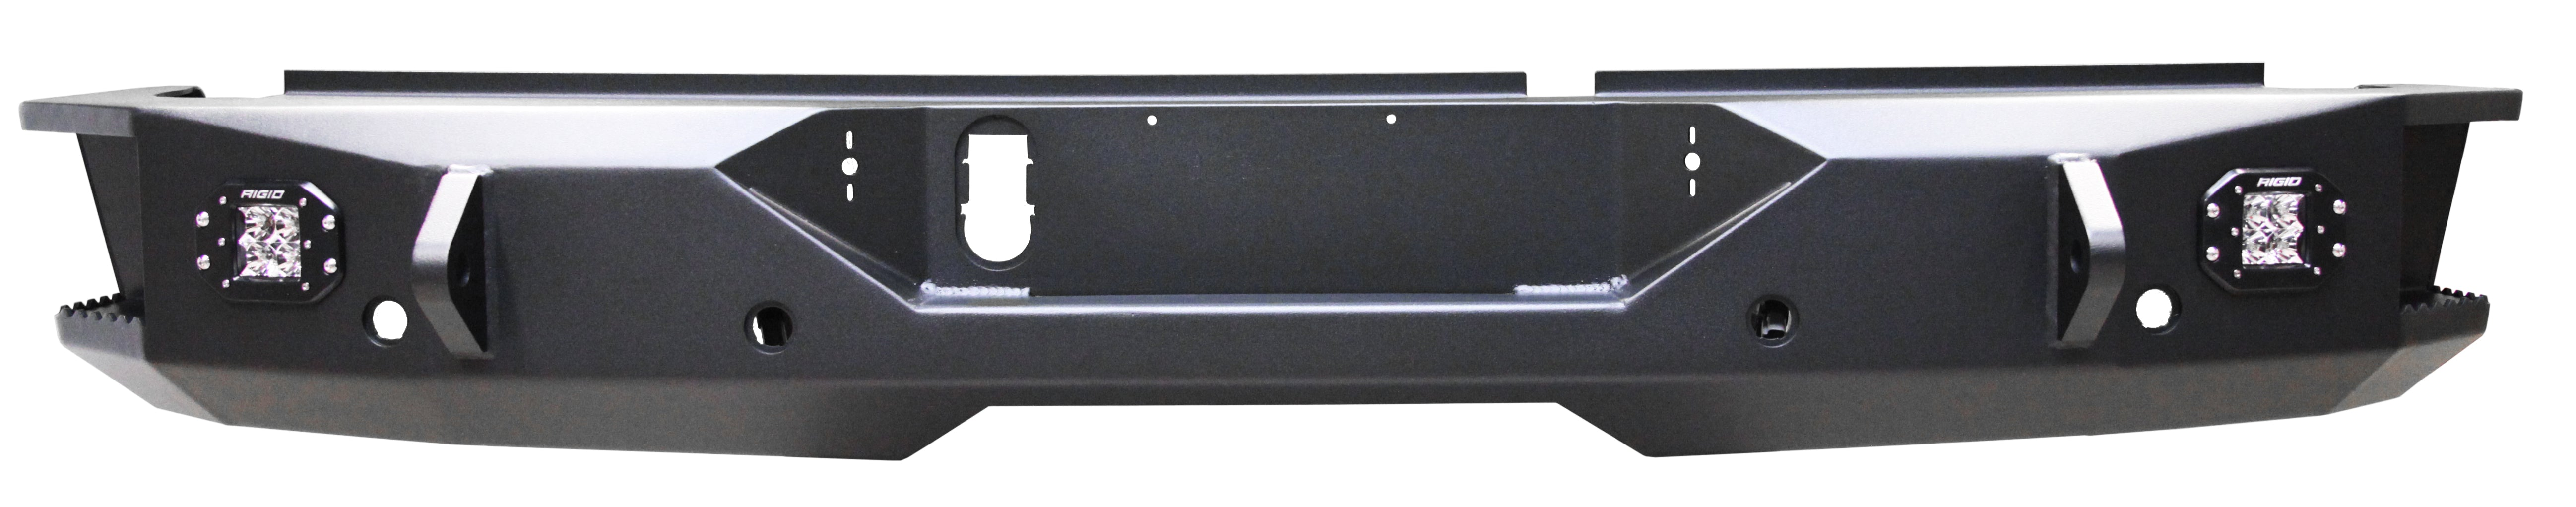 Chevrolet - 2500/3500 (2015-2018) Rear Bumper